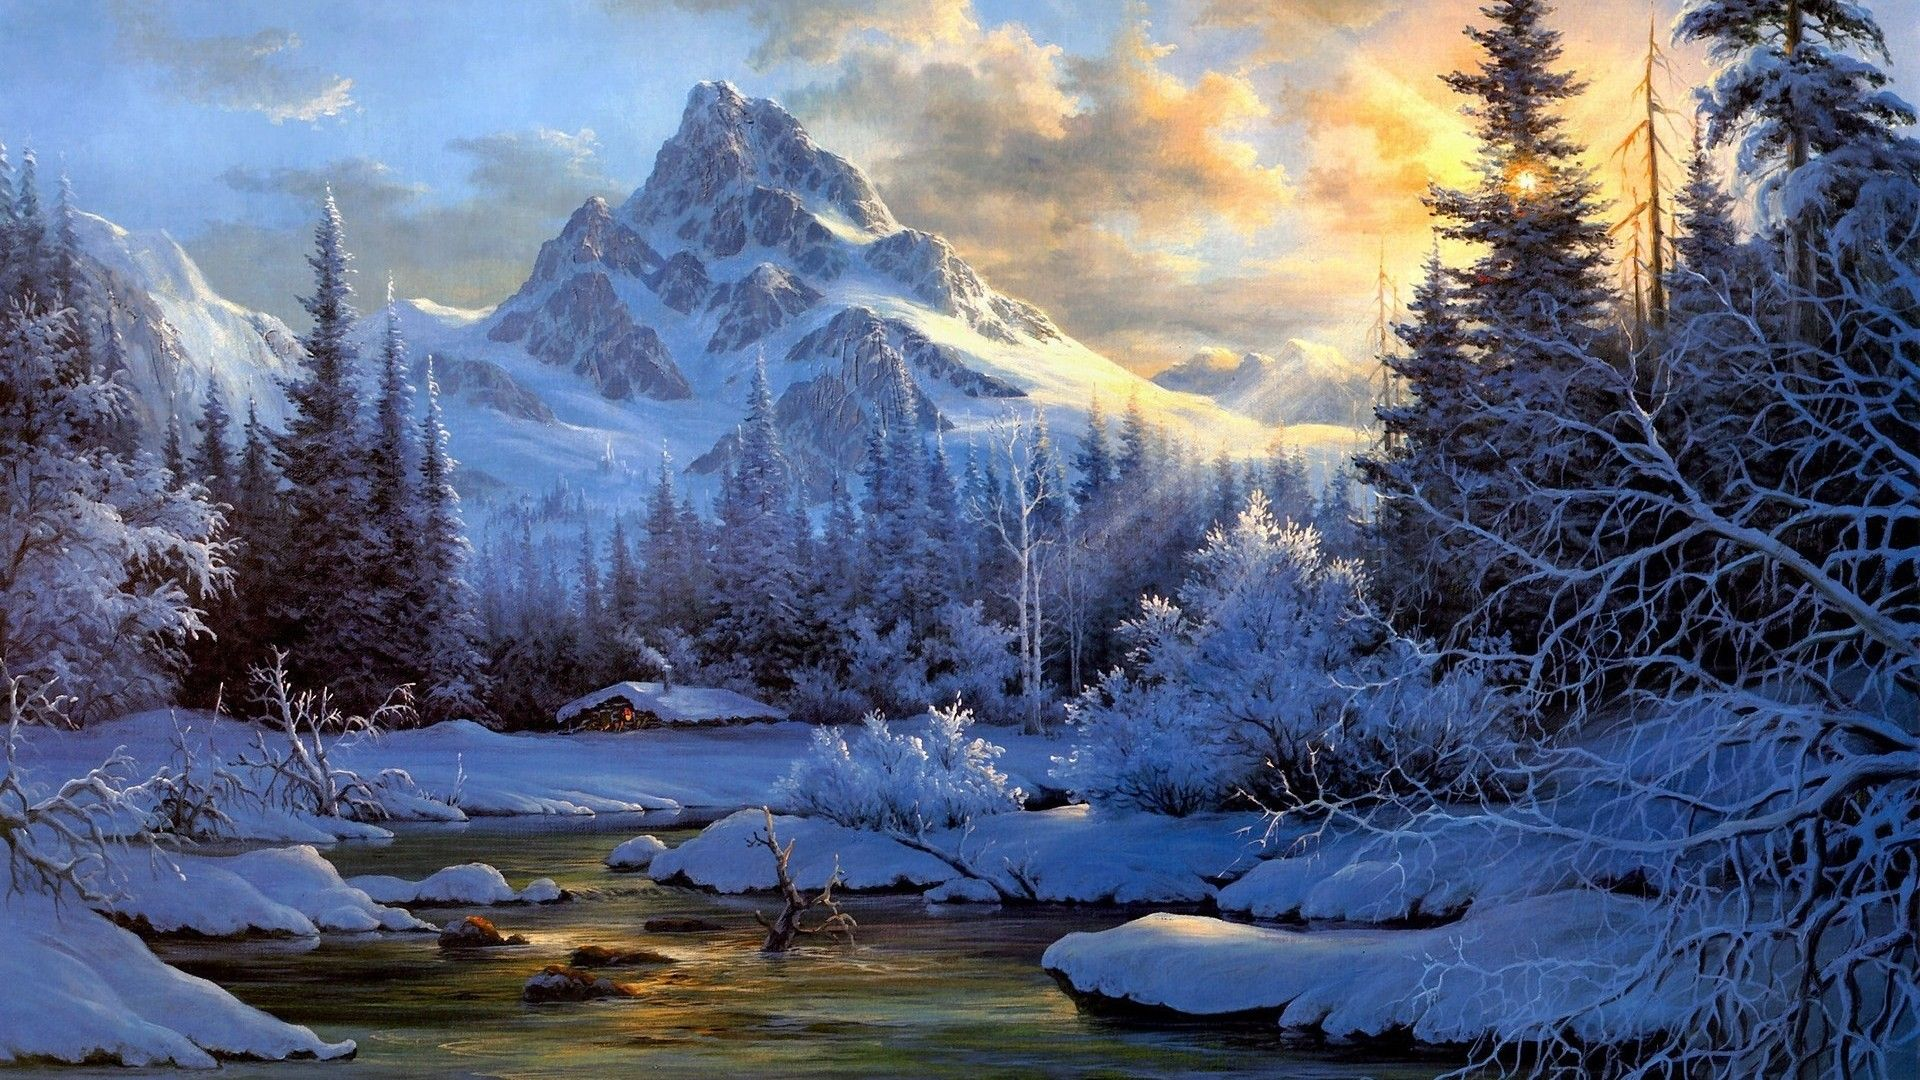 Winter Paintings With Snow 1498798 Mountain Landscape Painting Landscape Paintings Oil Painting Landscape